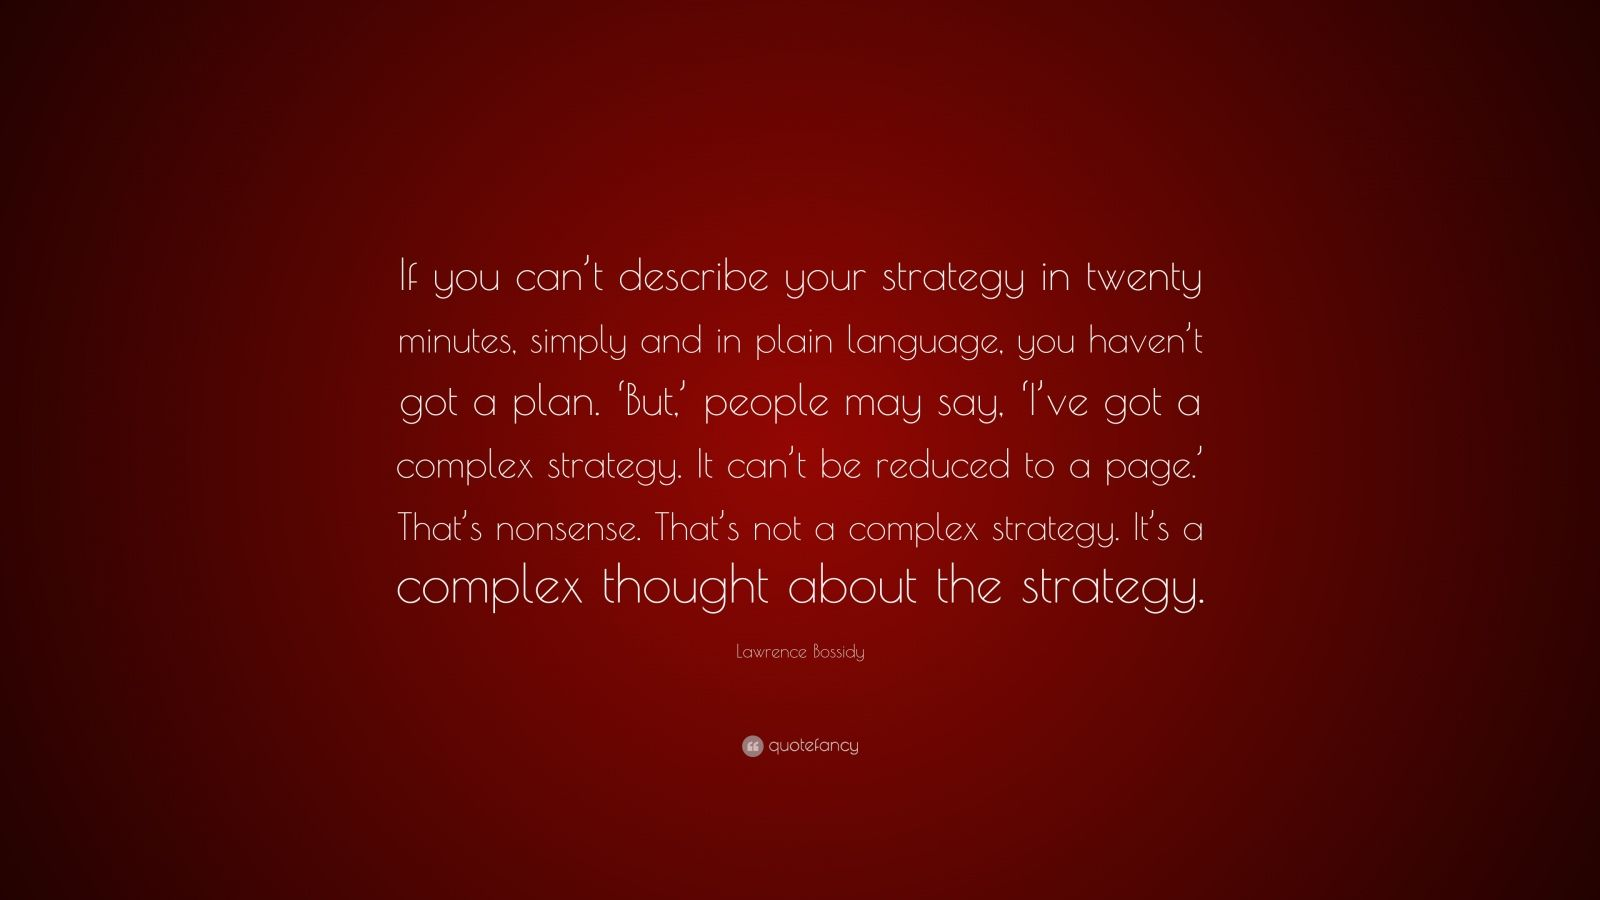 "Lawrence Bossidy Quote: ""If you can't describe your strategy in twenty minutes, simply and in plain language, you haven't got a plan. 'But,' people may say, 'I've got a complex strategy. It can't be reduced to a page.' That's nonsense. That's not a complex strategy. It's a complex thought about the strategy."""